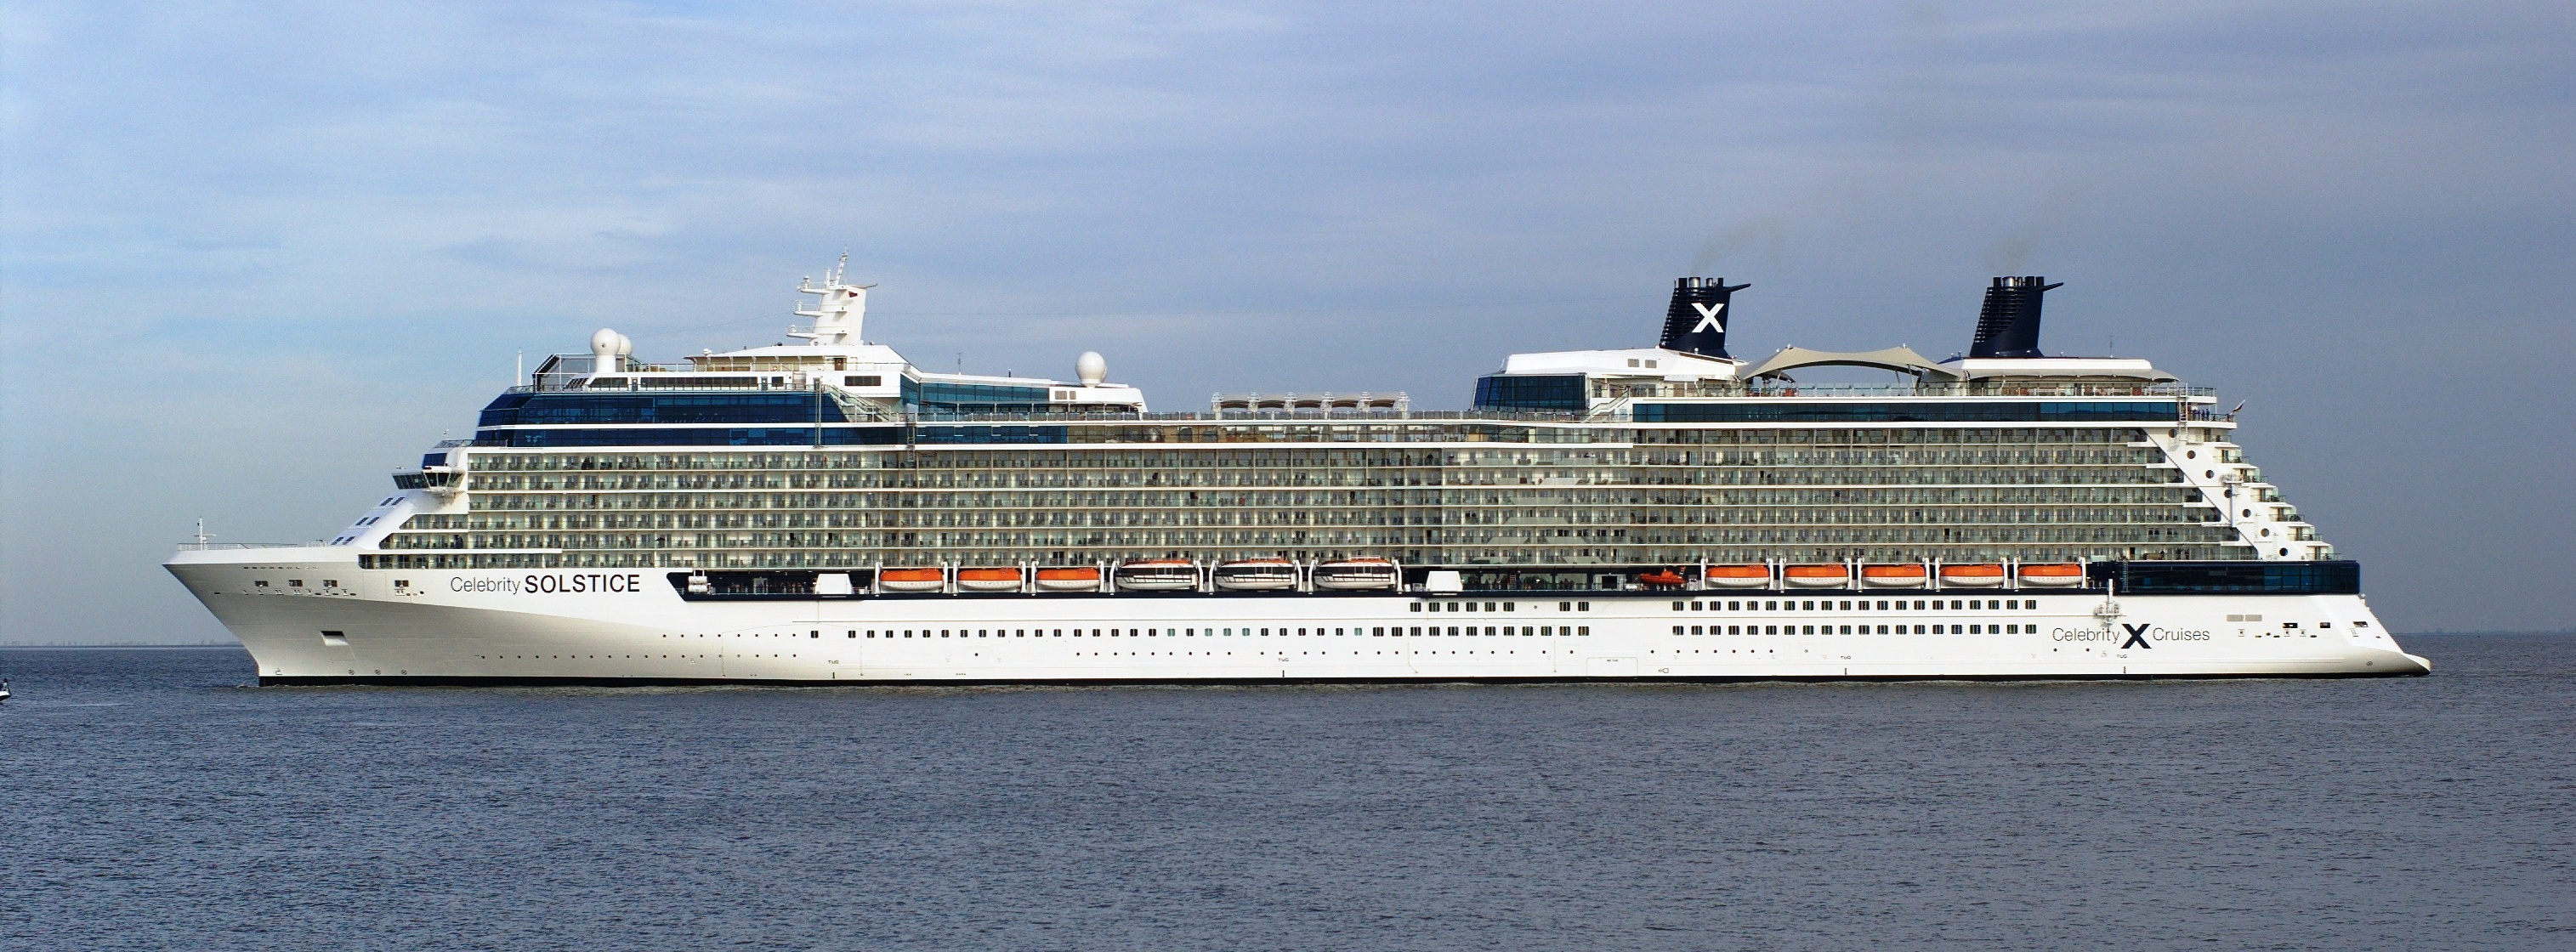 Celebrity solstice history